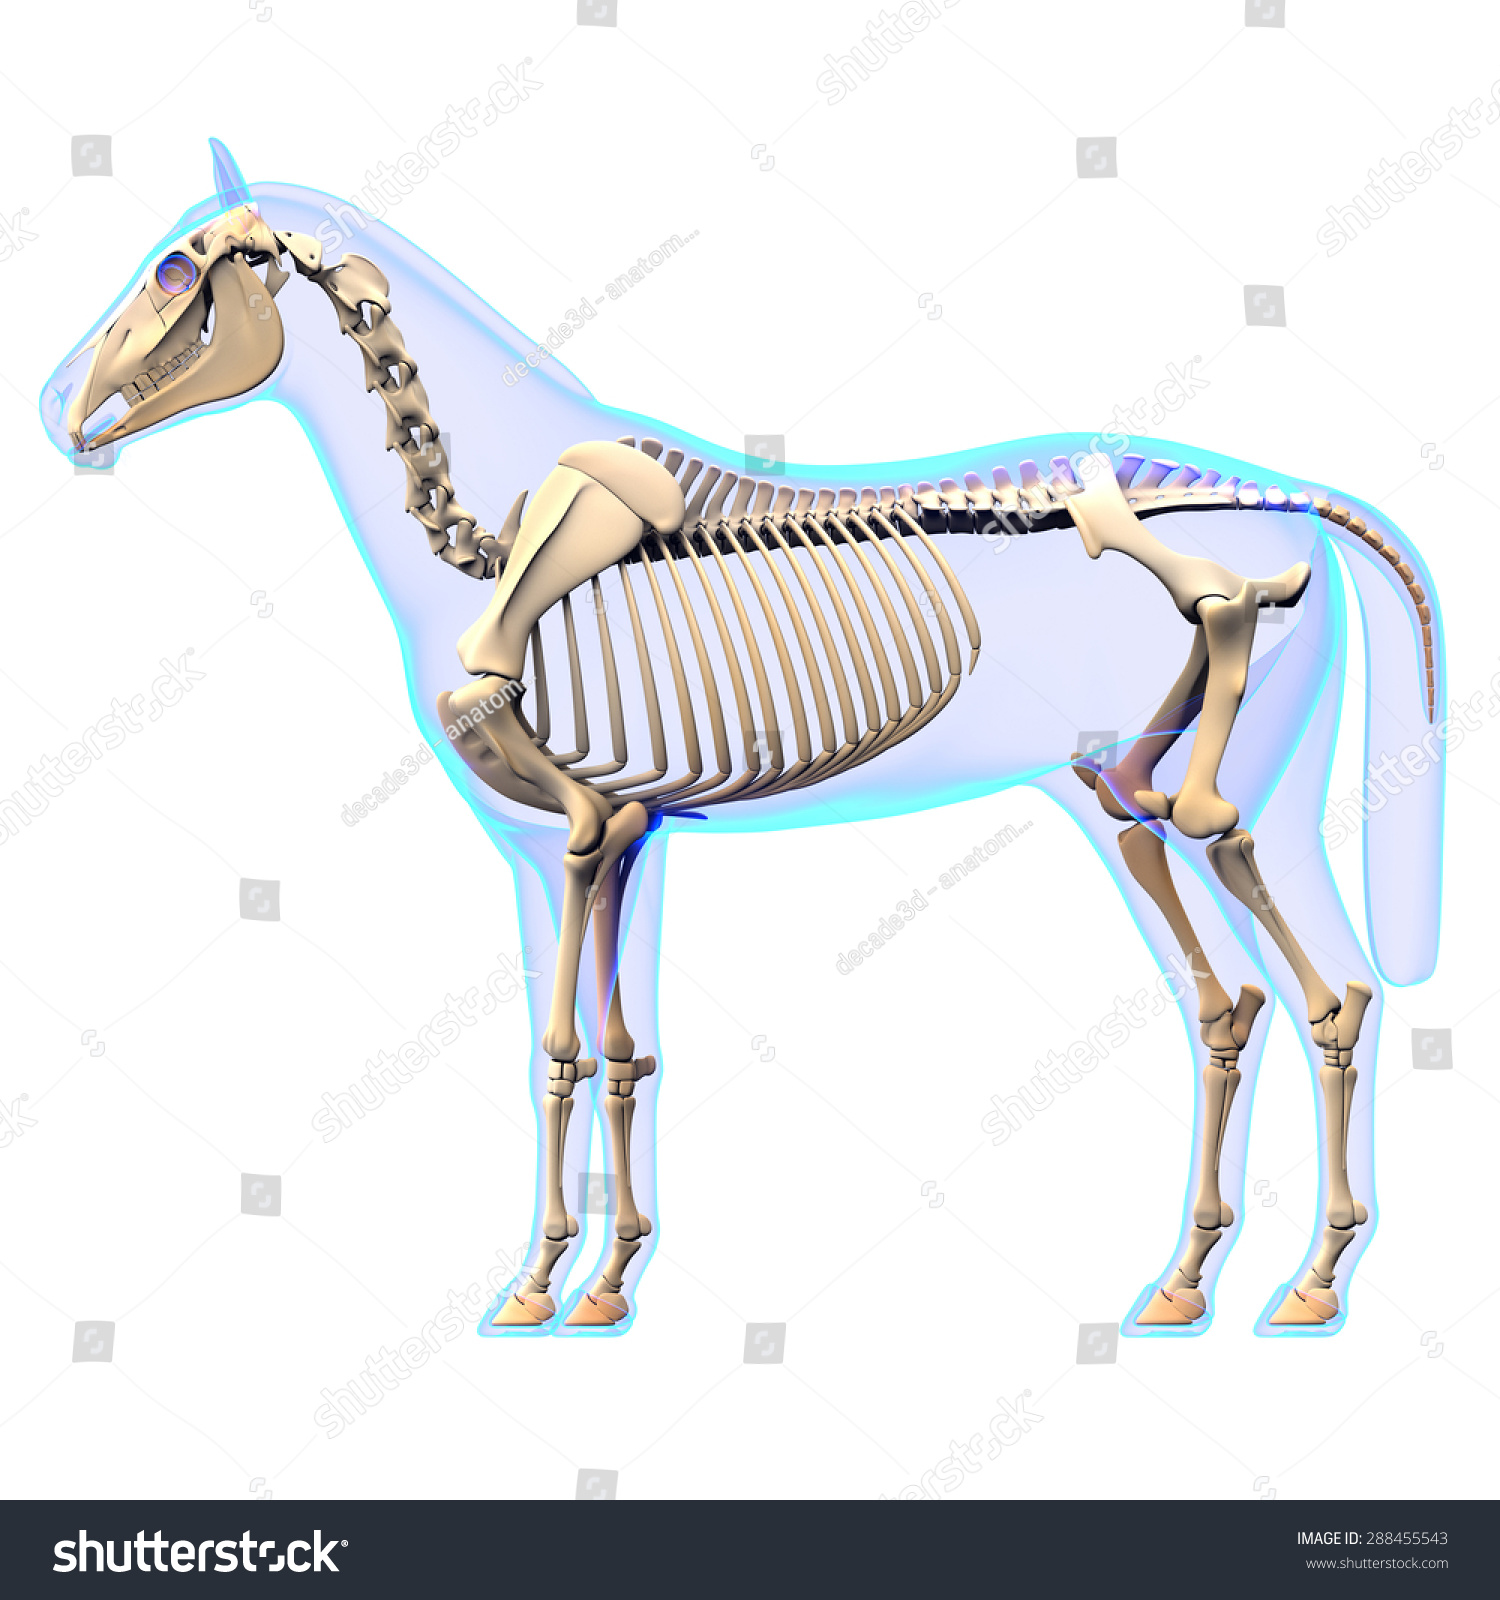 Horse Skeleton Side View Anatomy - isolated on white | EZ Canvas